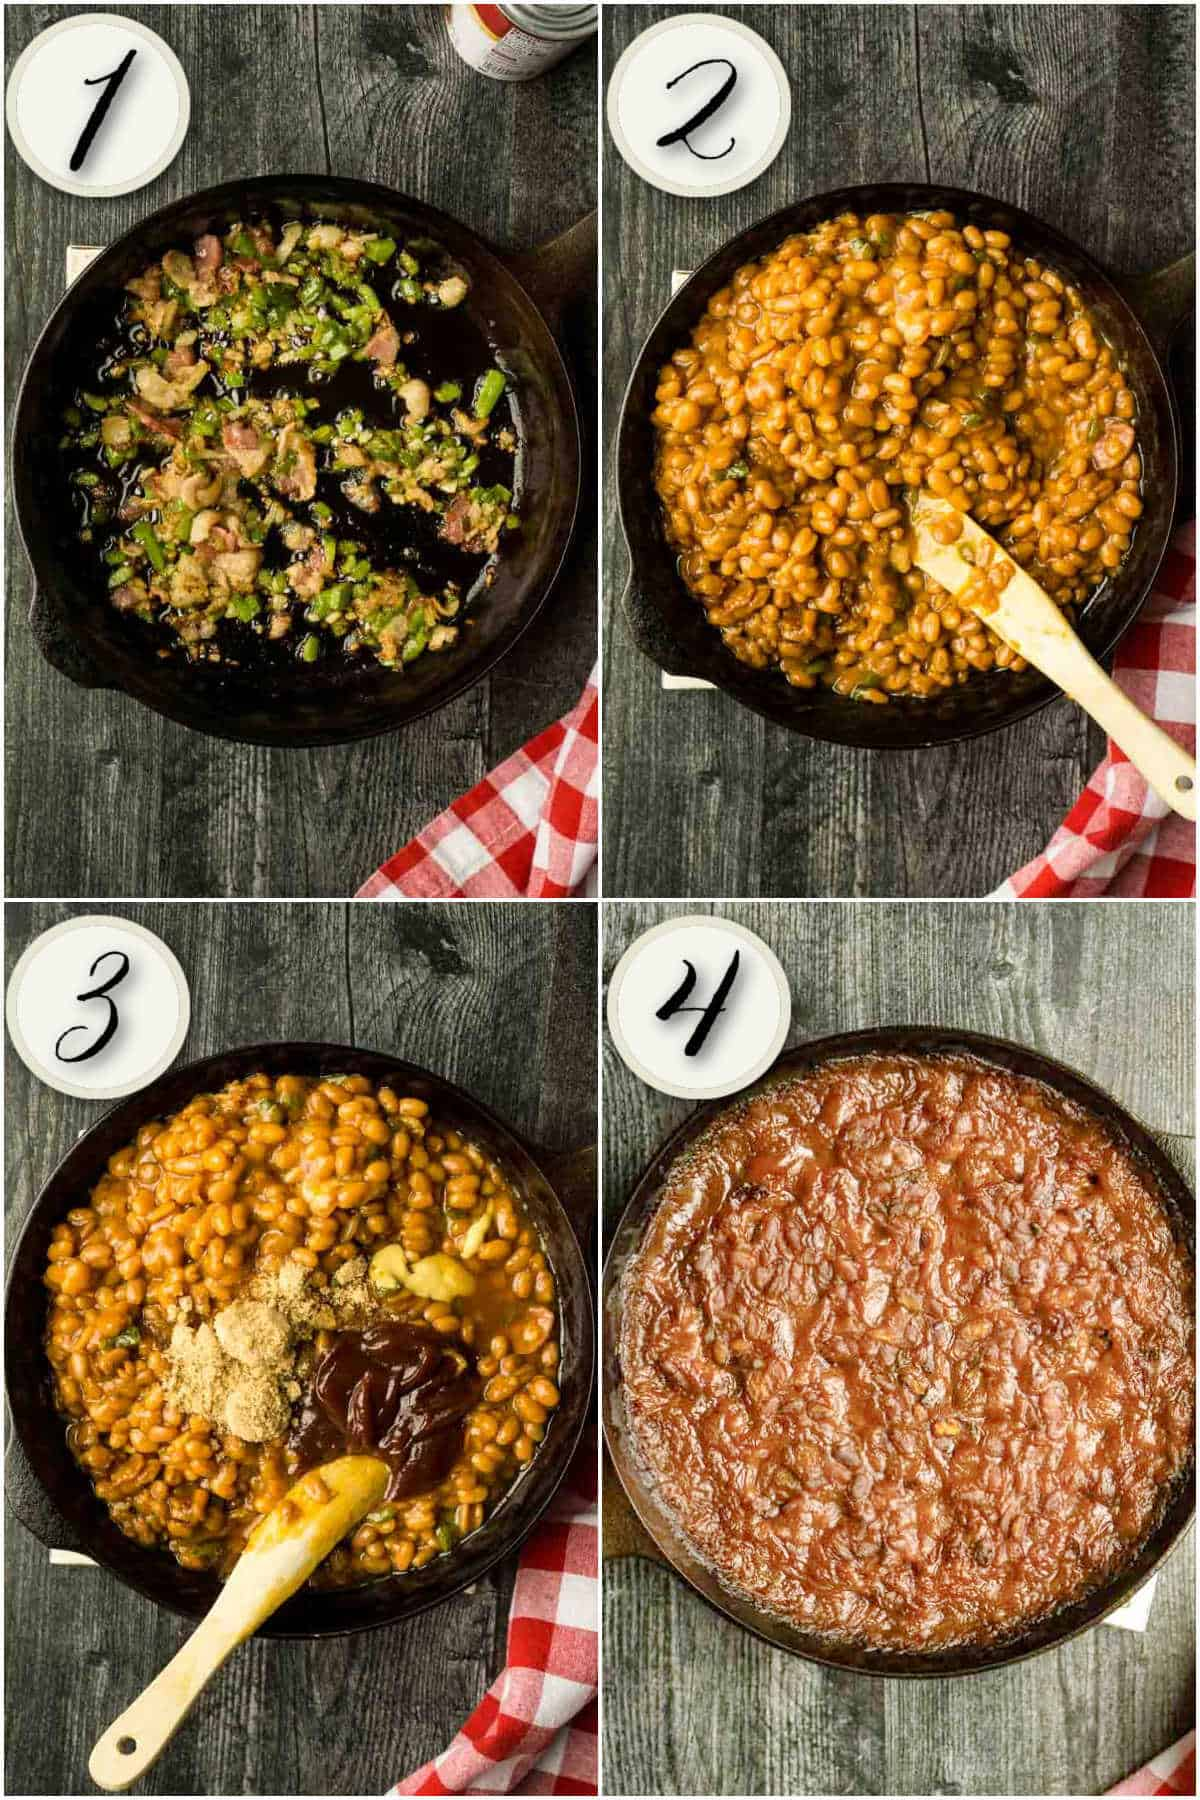 4 images of cooking baked beans in cast iron skillet sauteeing veggies, adding beans, and baking